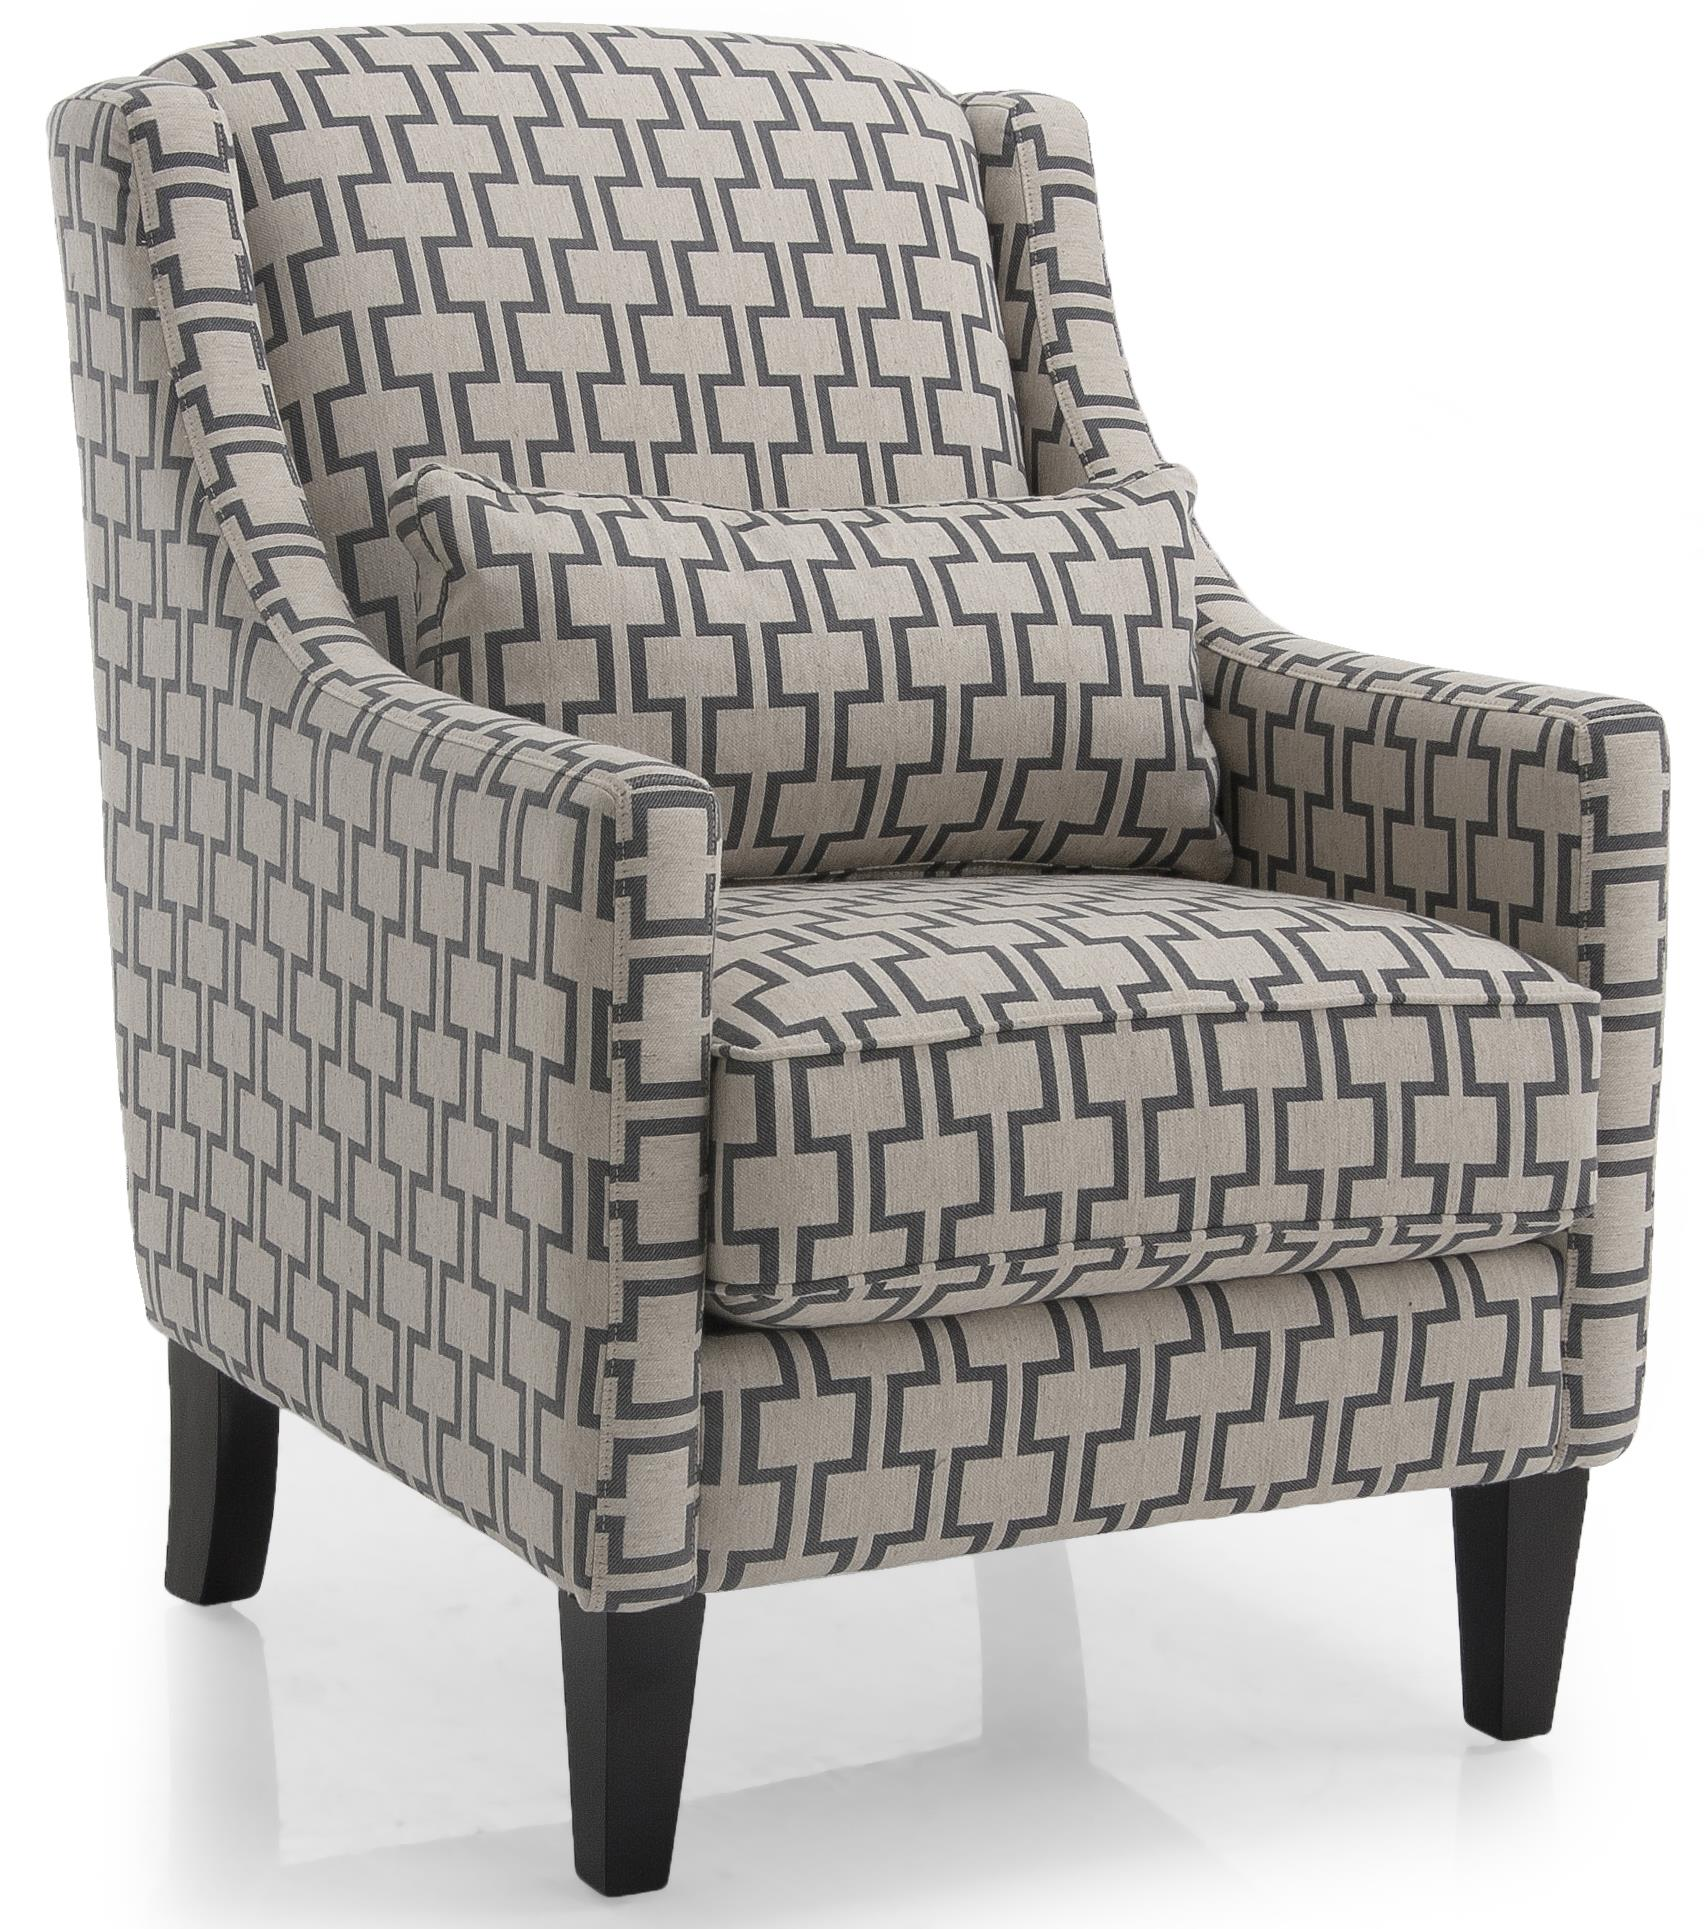 7606 Chair by Decor-Rest at Stoney Creek Furniture